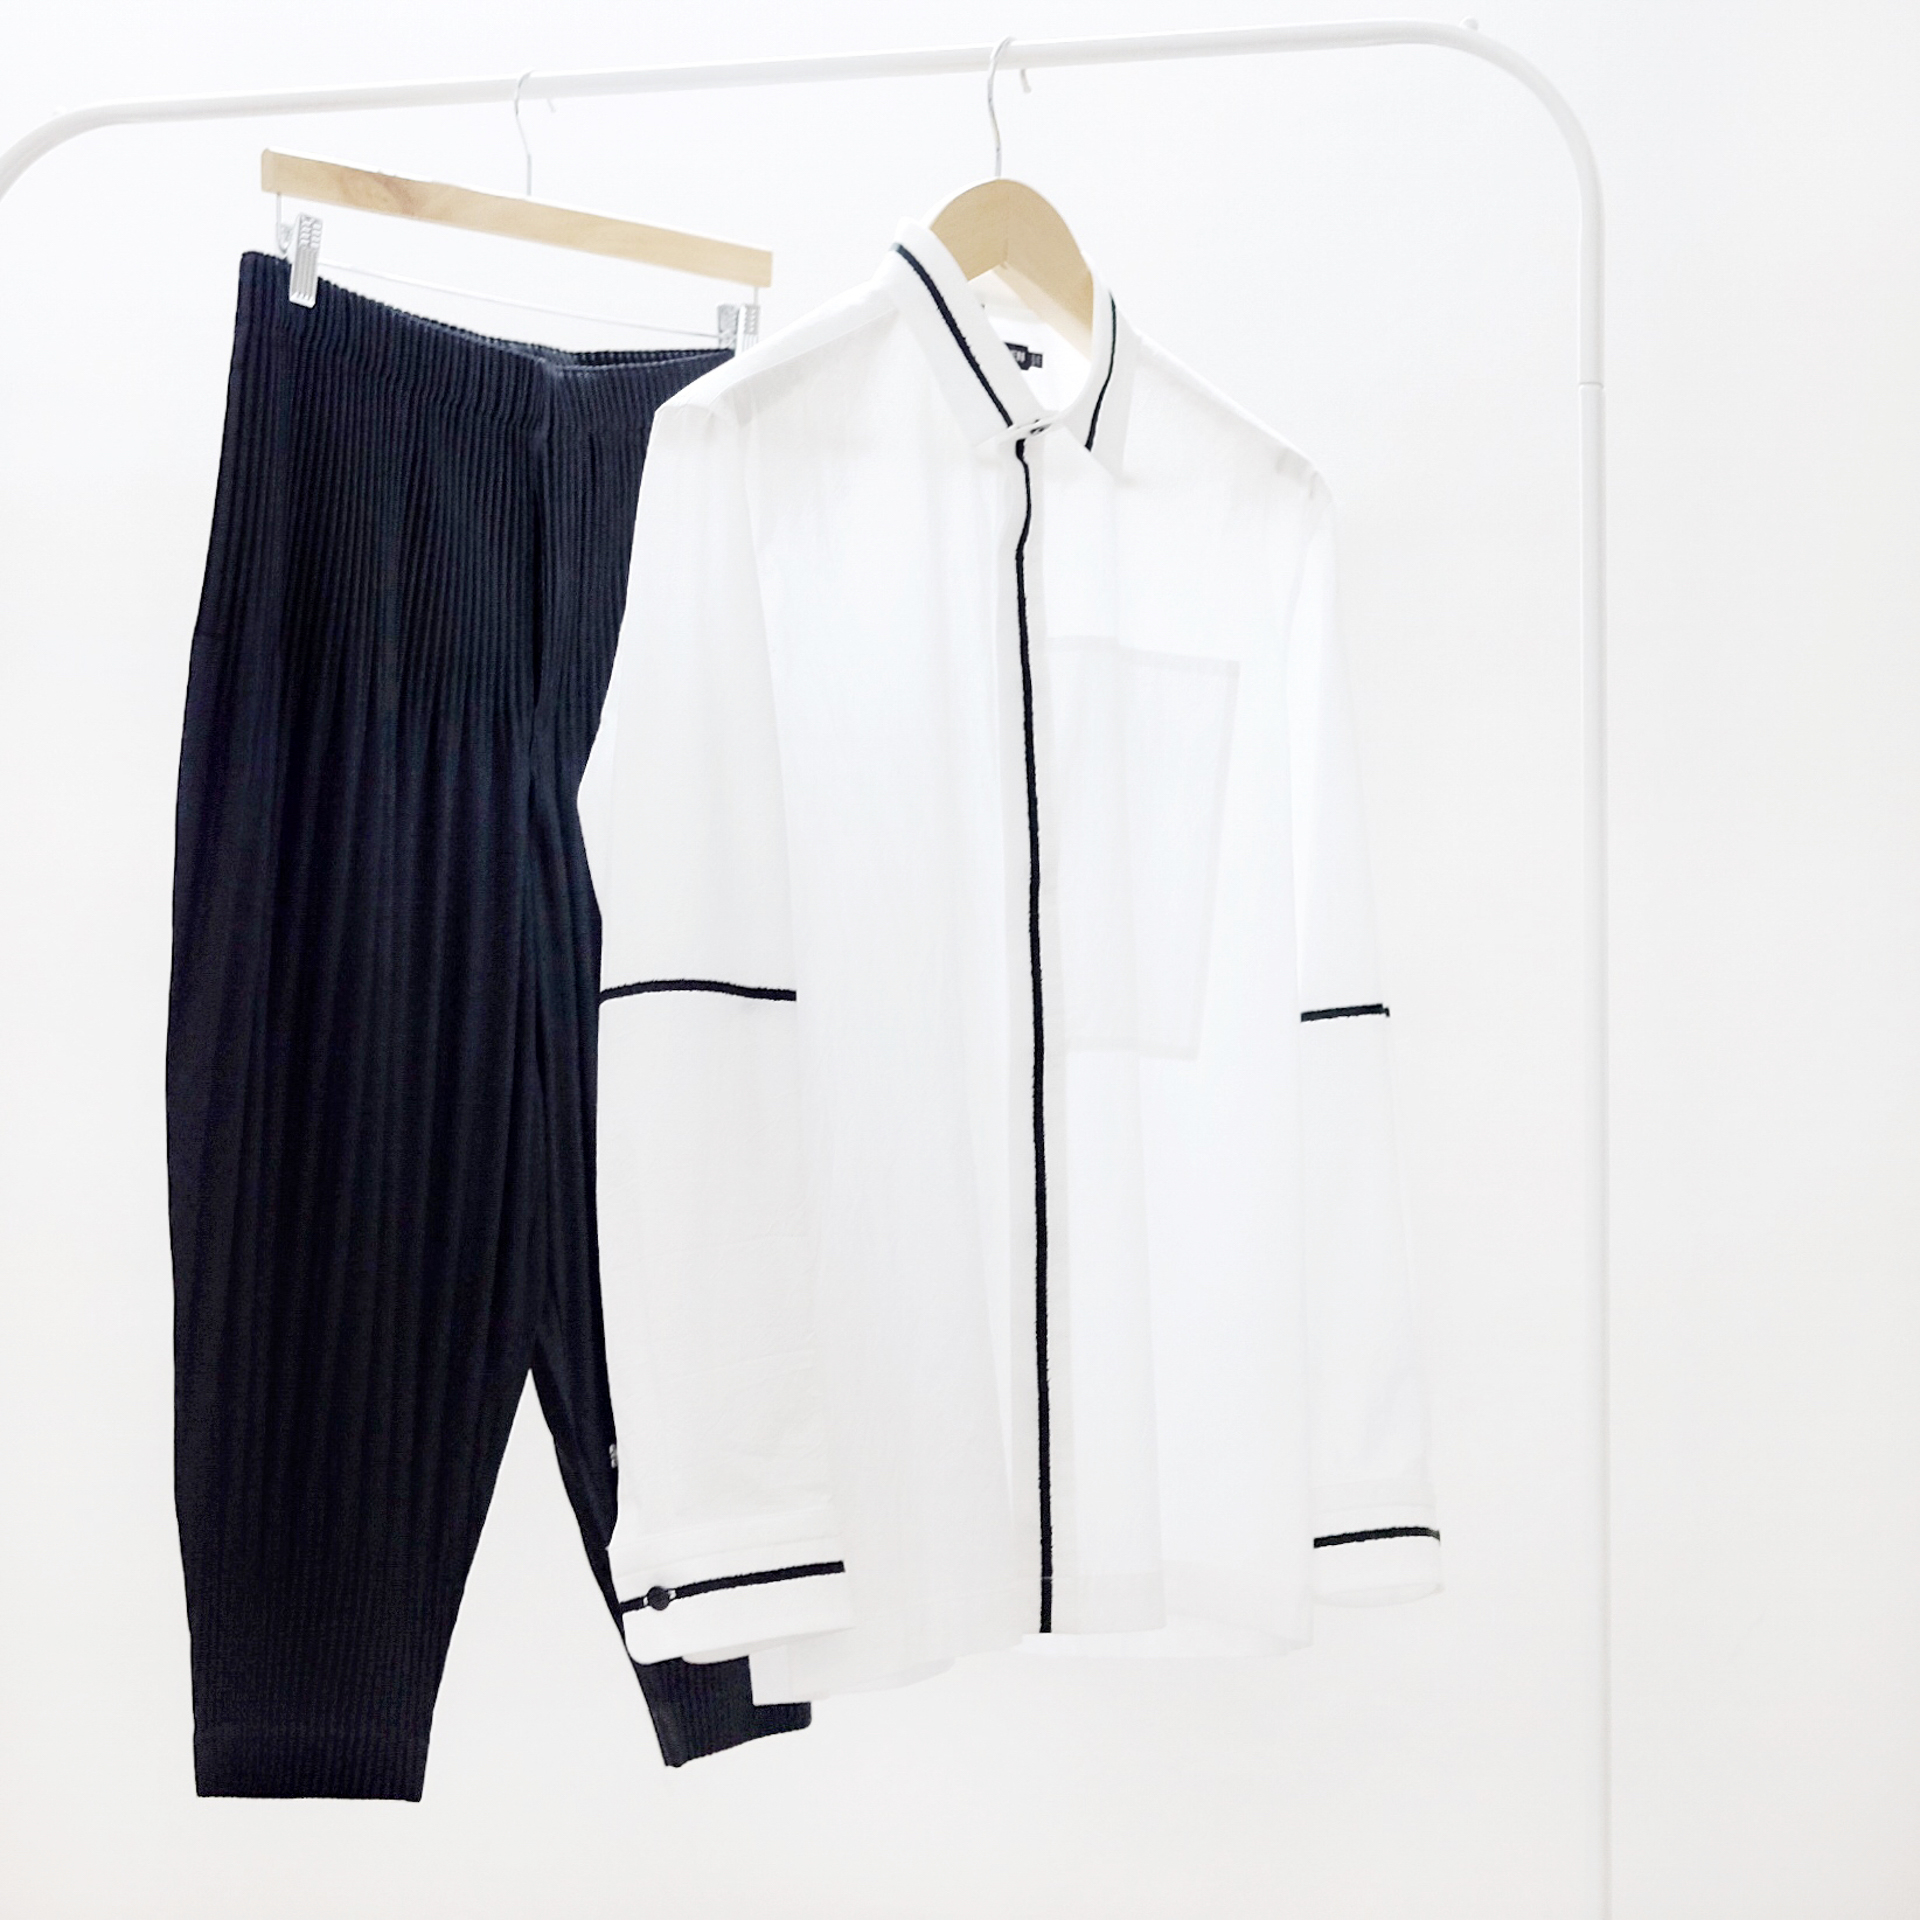 Issey Miyake Men White Contrast Stripe Shirt and Homme Plisse Pleated Shorts